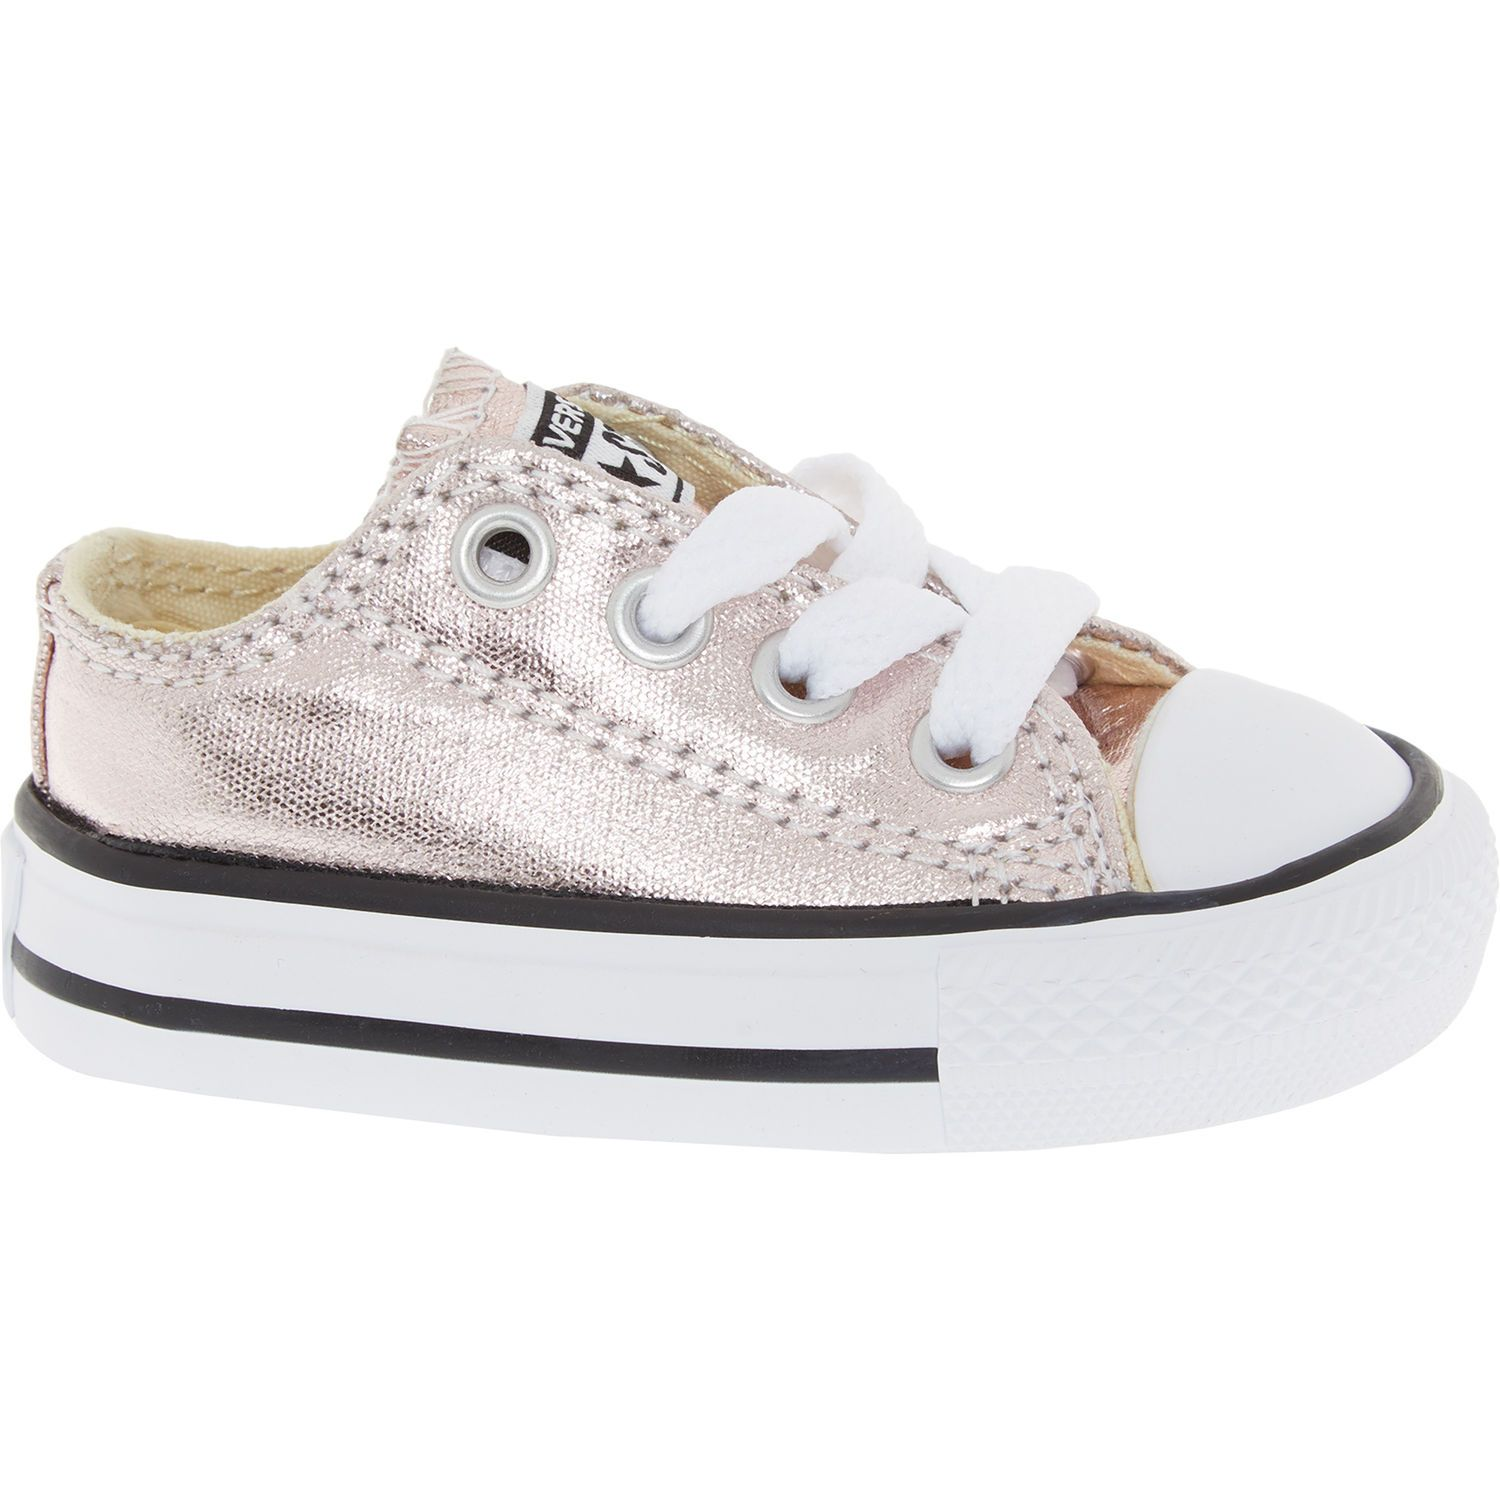 Rose Quartz Trainers - Trainers - Shoes - Kids - TK Maxx   toys in ... 7979046813